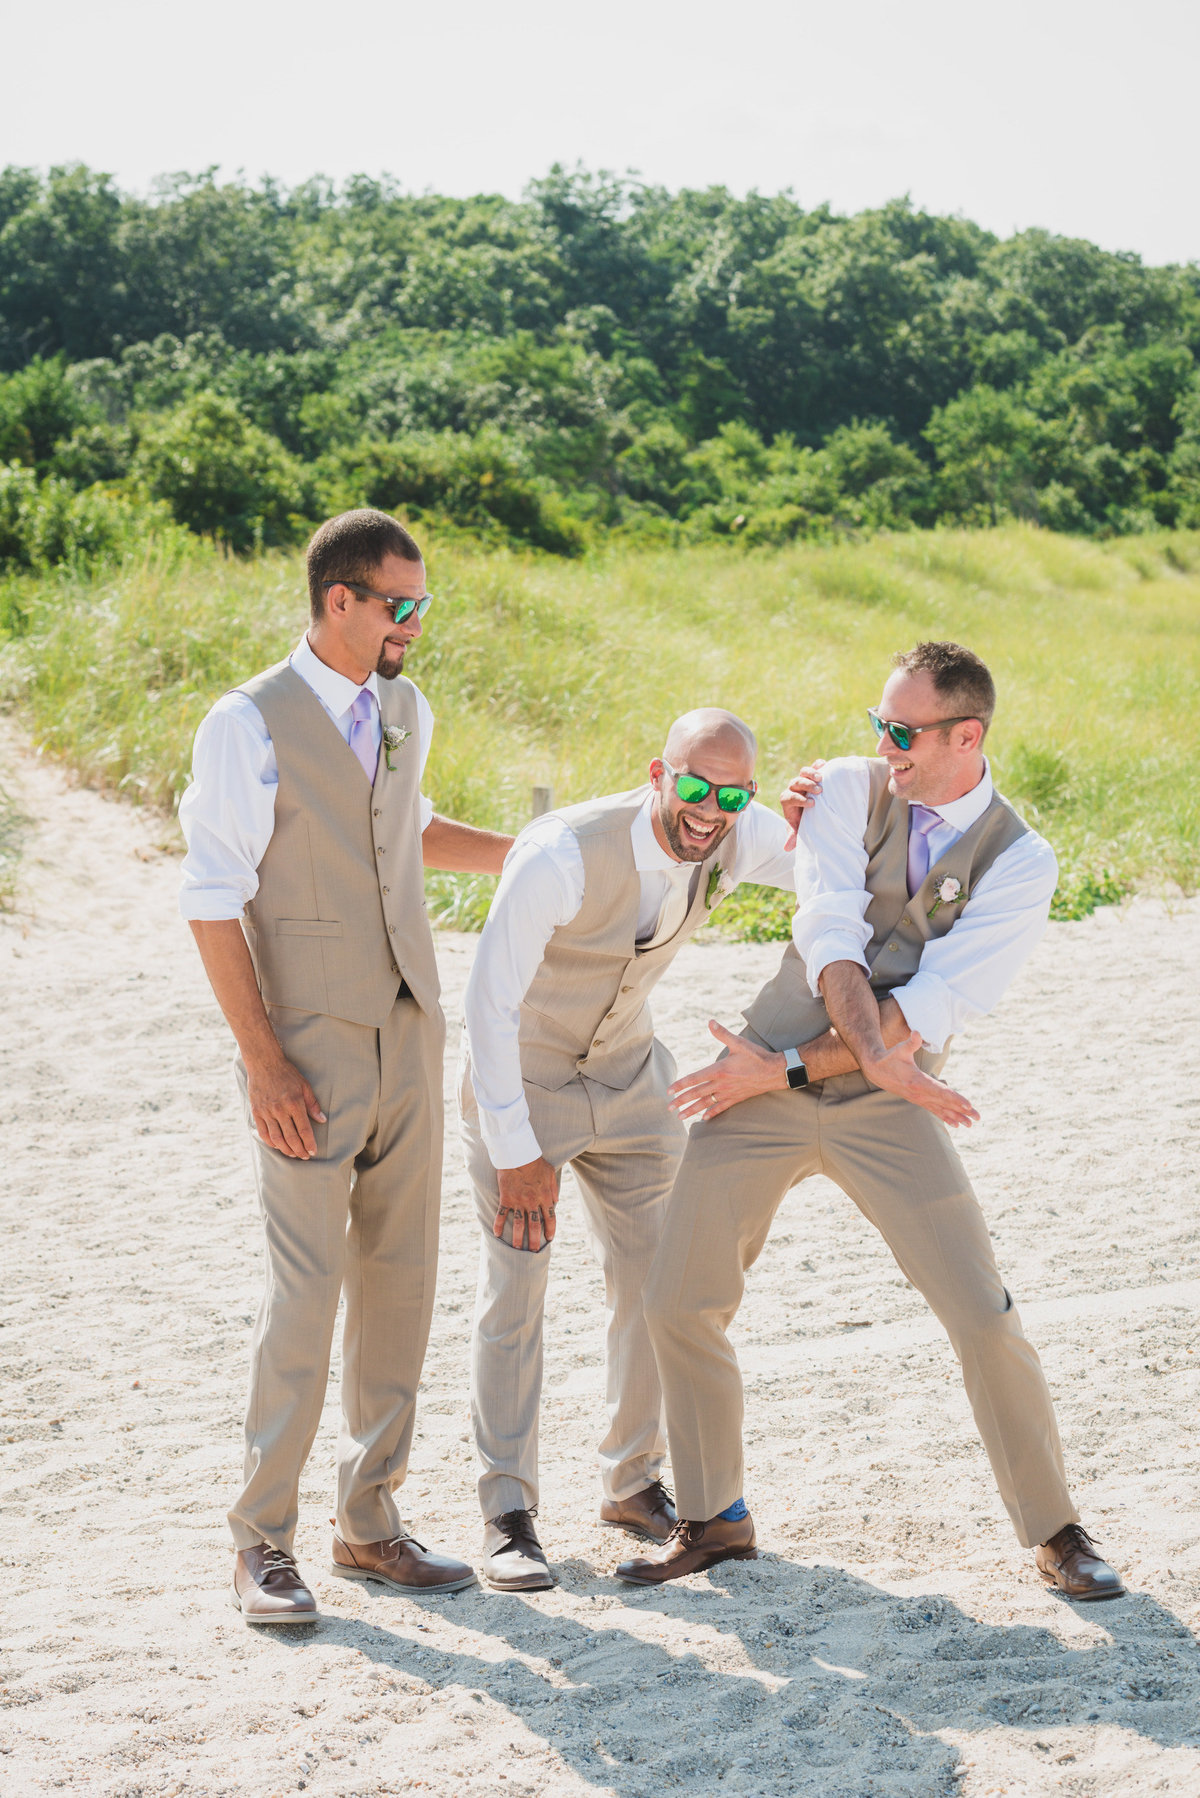 photo of groom with groomsmen on the beach from wedding at Pavilion at Sunken Meadow